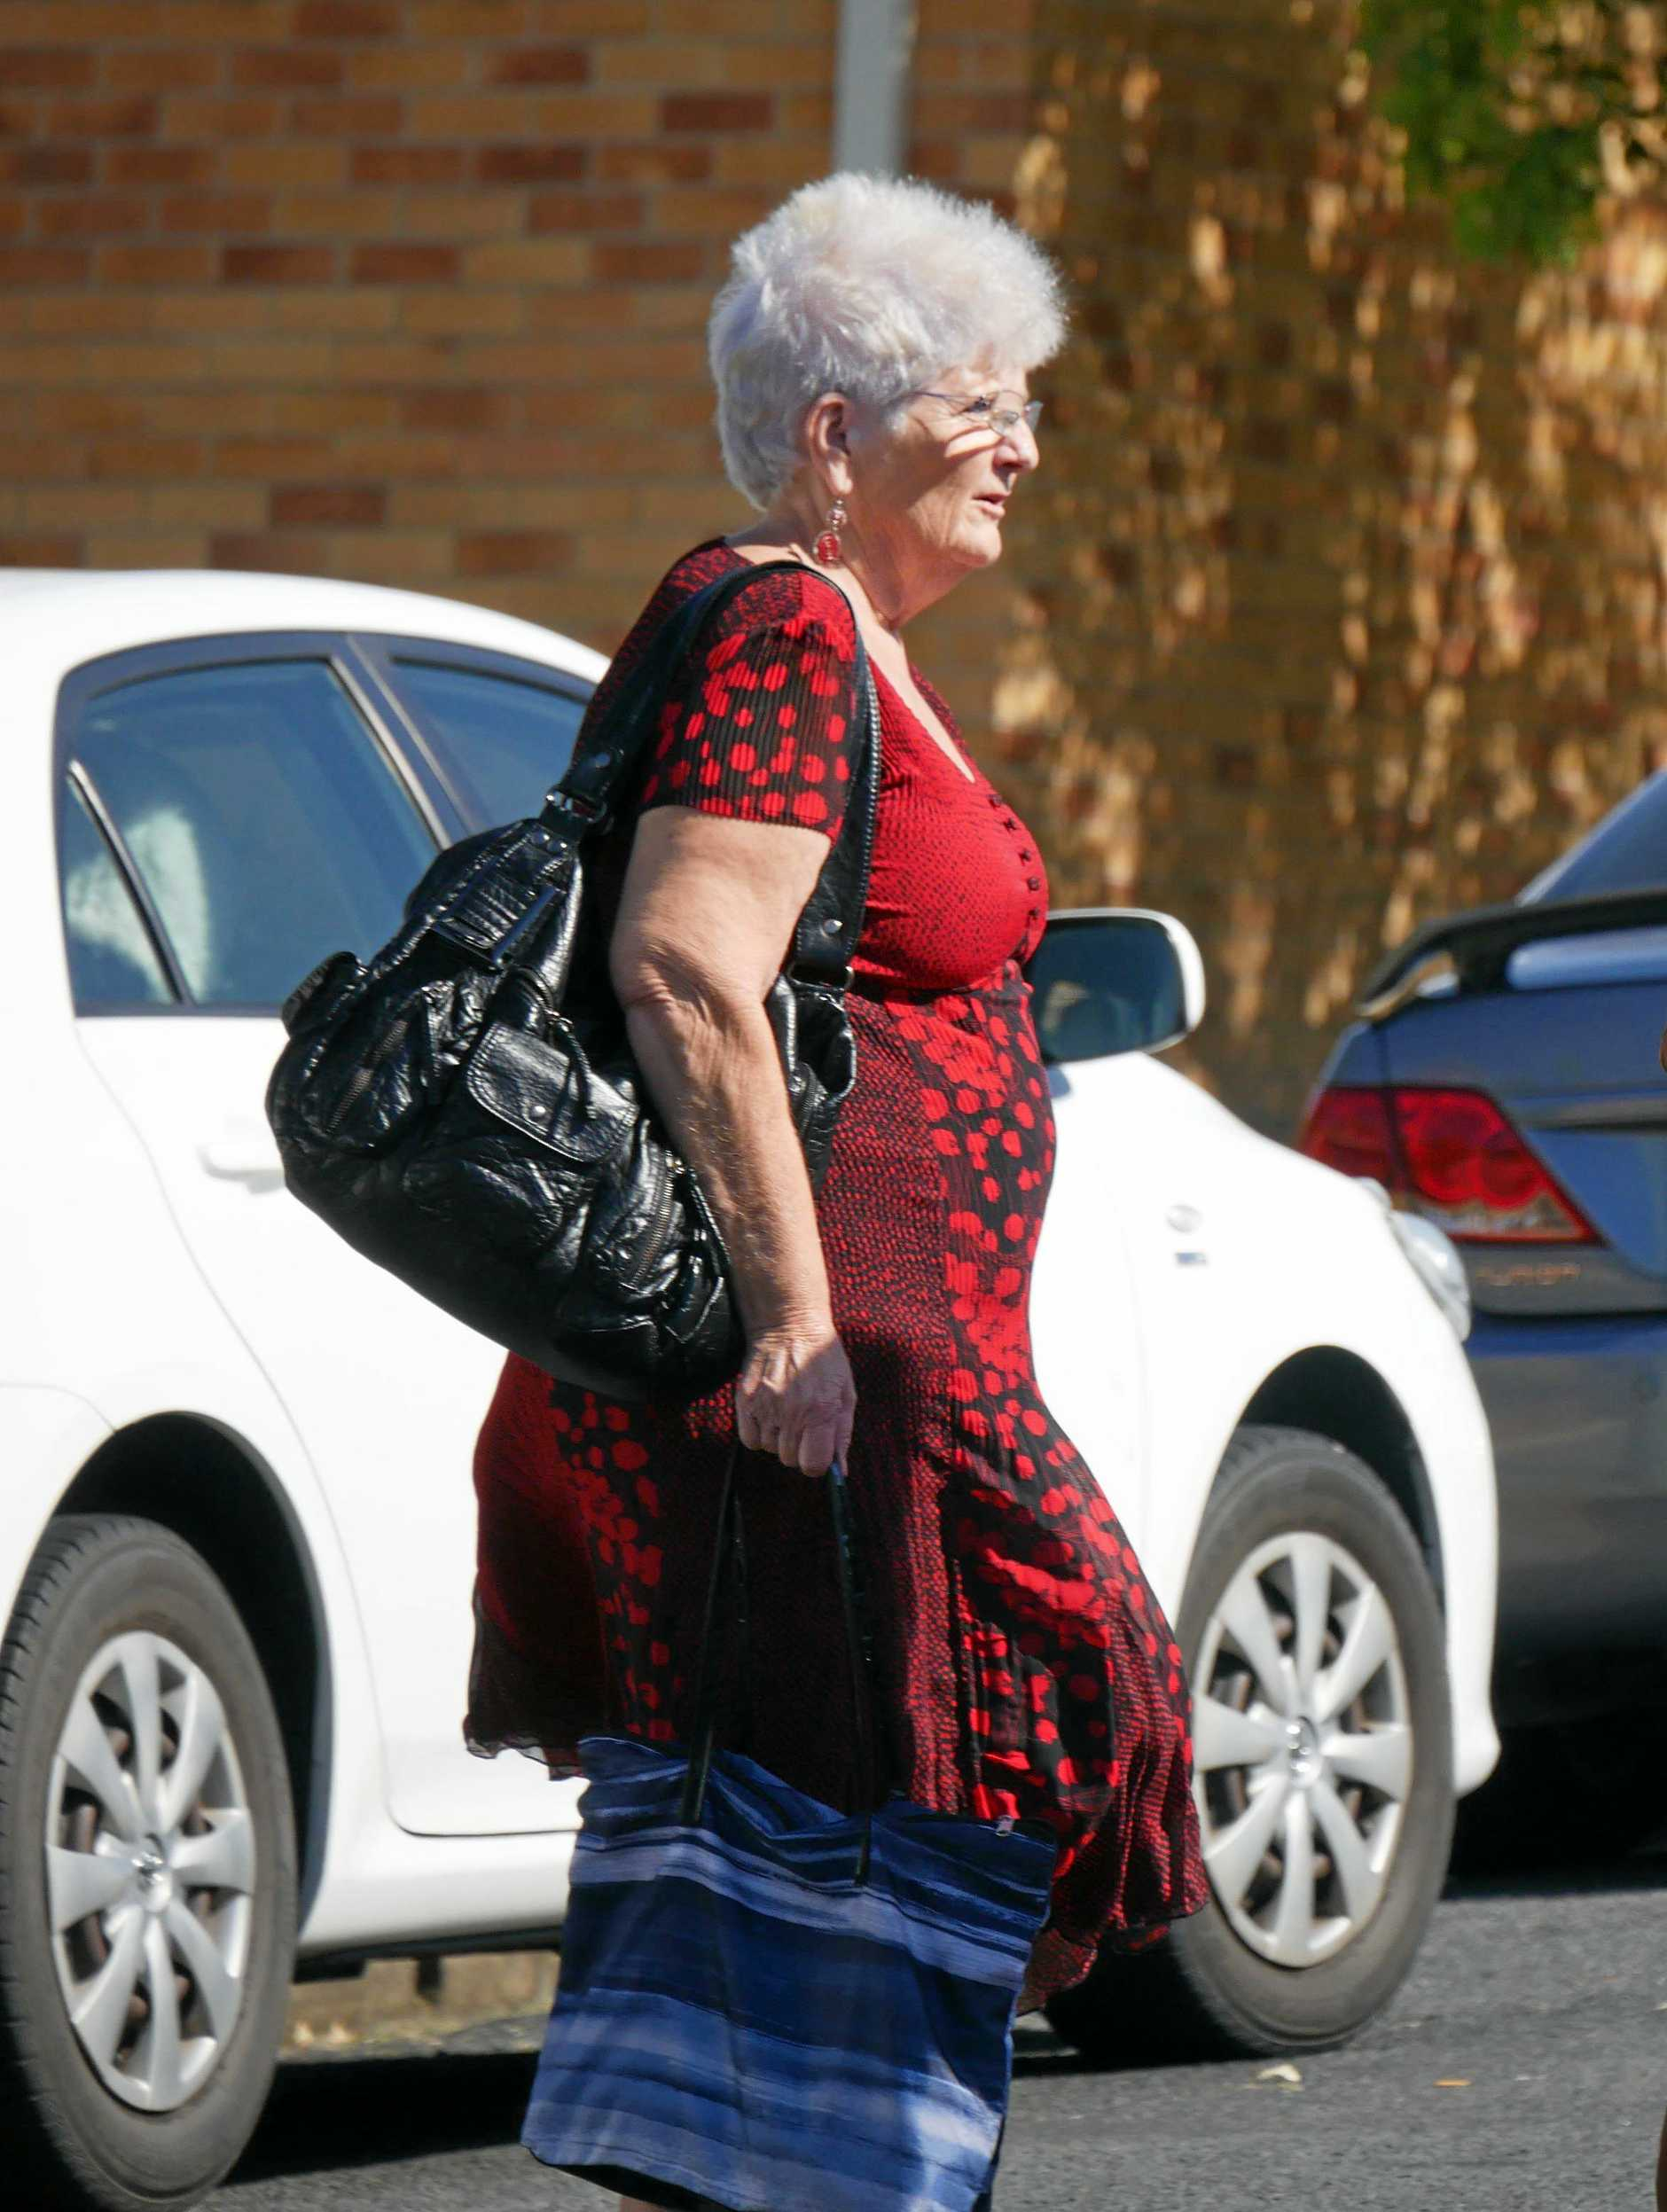 Erioll Ann Whitney, 66, of Scarness, leaves Hervey Bay District Court.